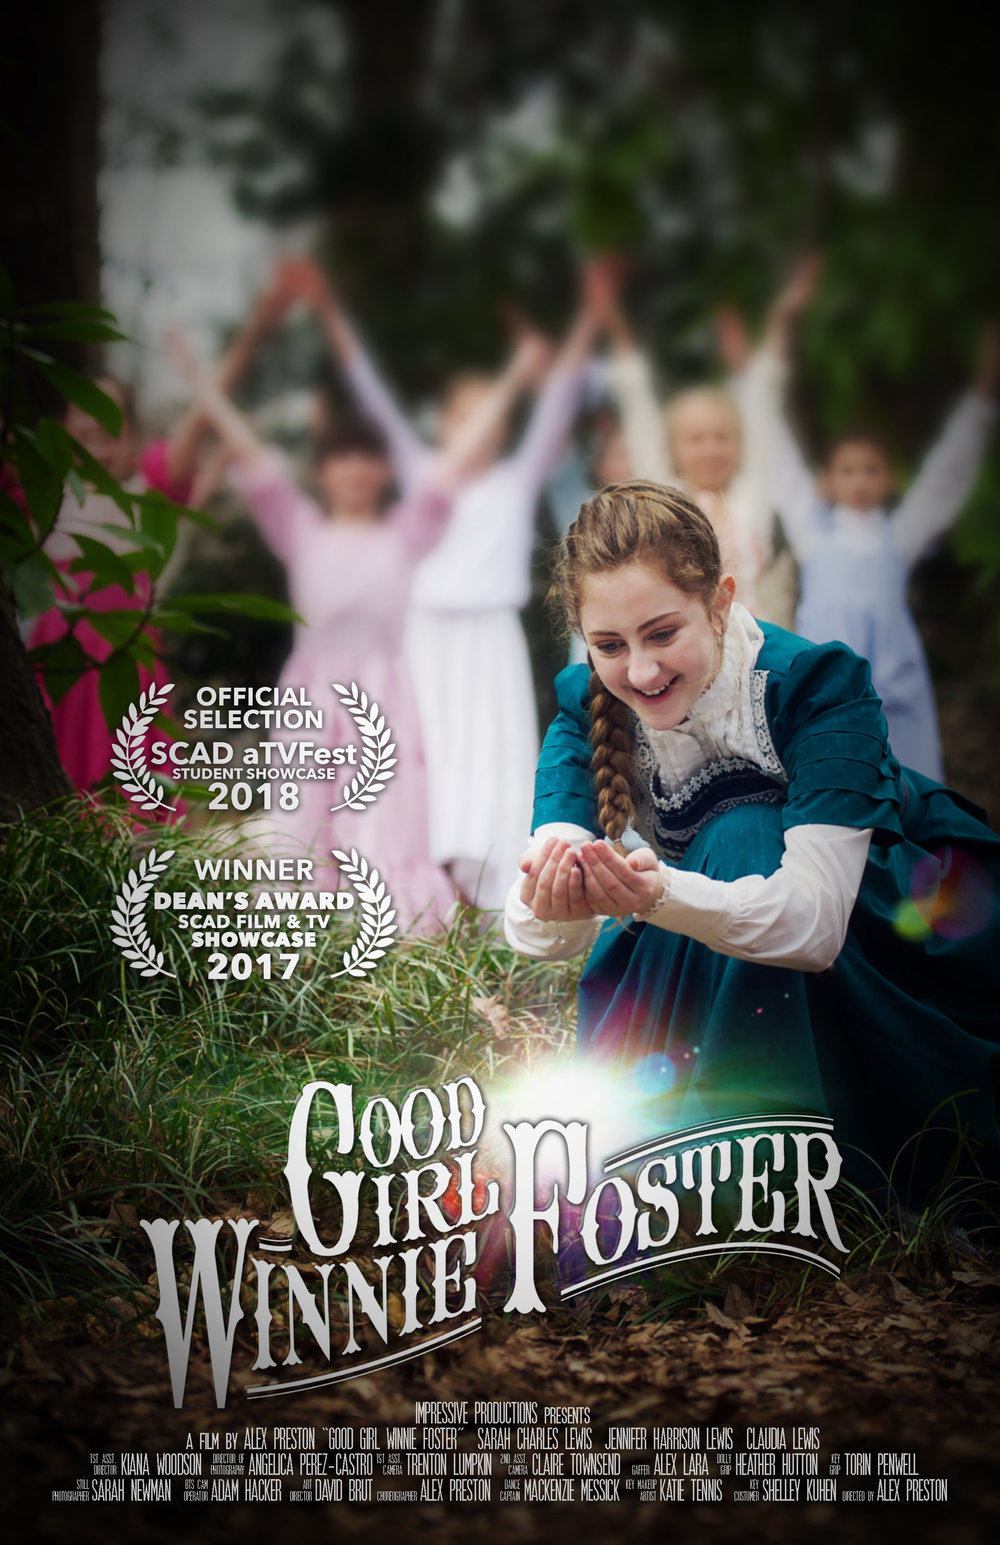 Good Girl Winnie Foster Poster NEW.jpg